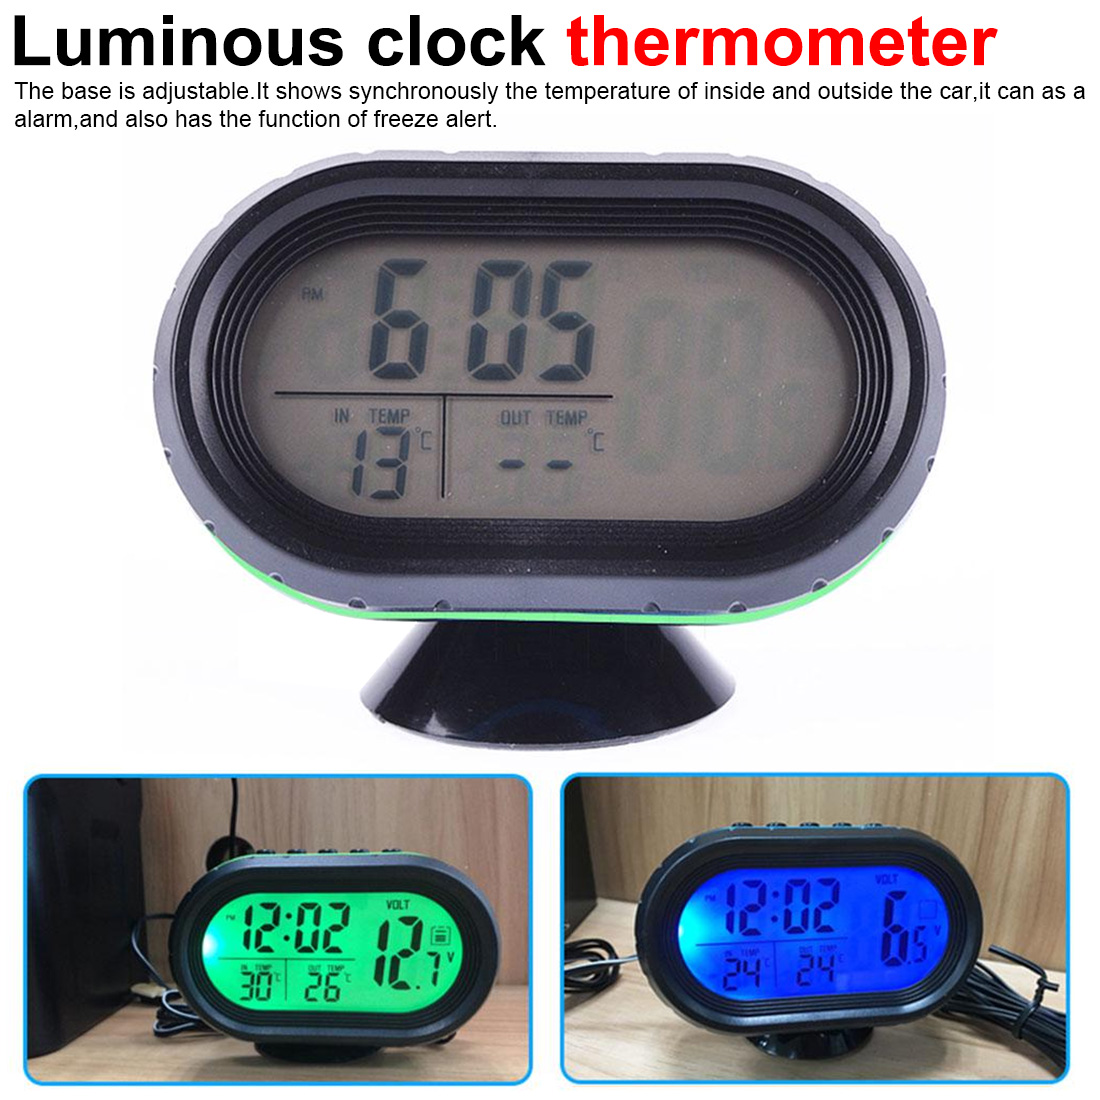 Car clock watch car electronic mometer luminous clock car electronics accessories 12v thermometer alarma auto